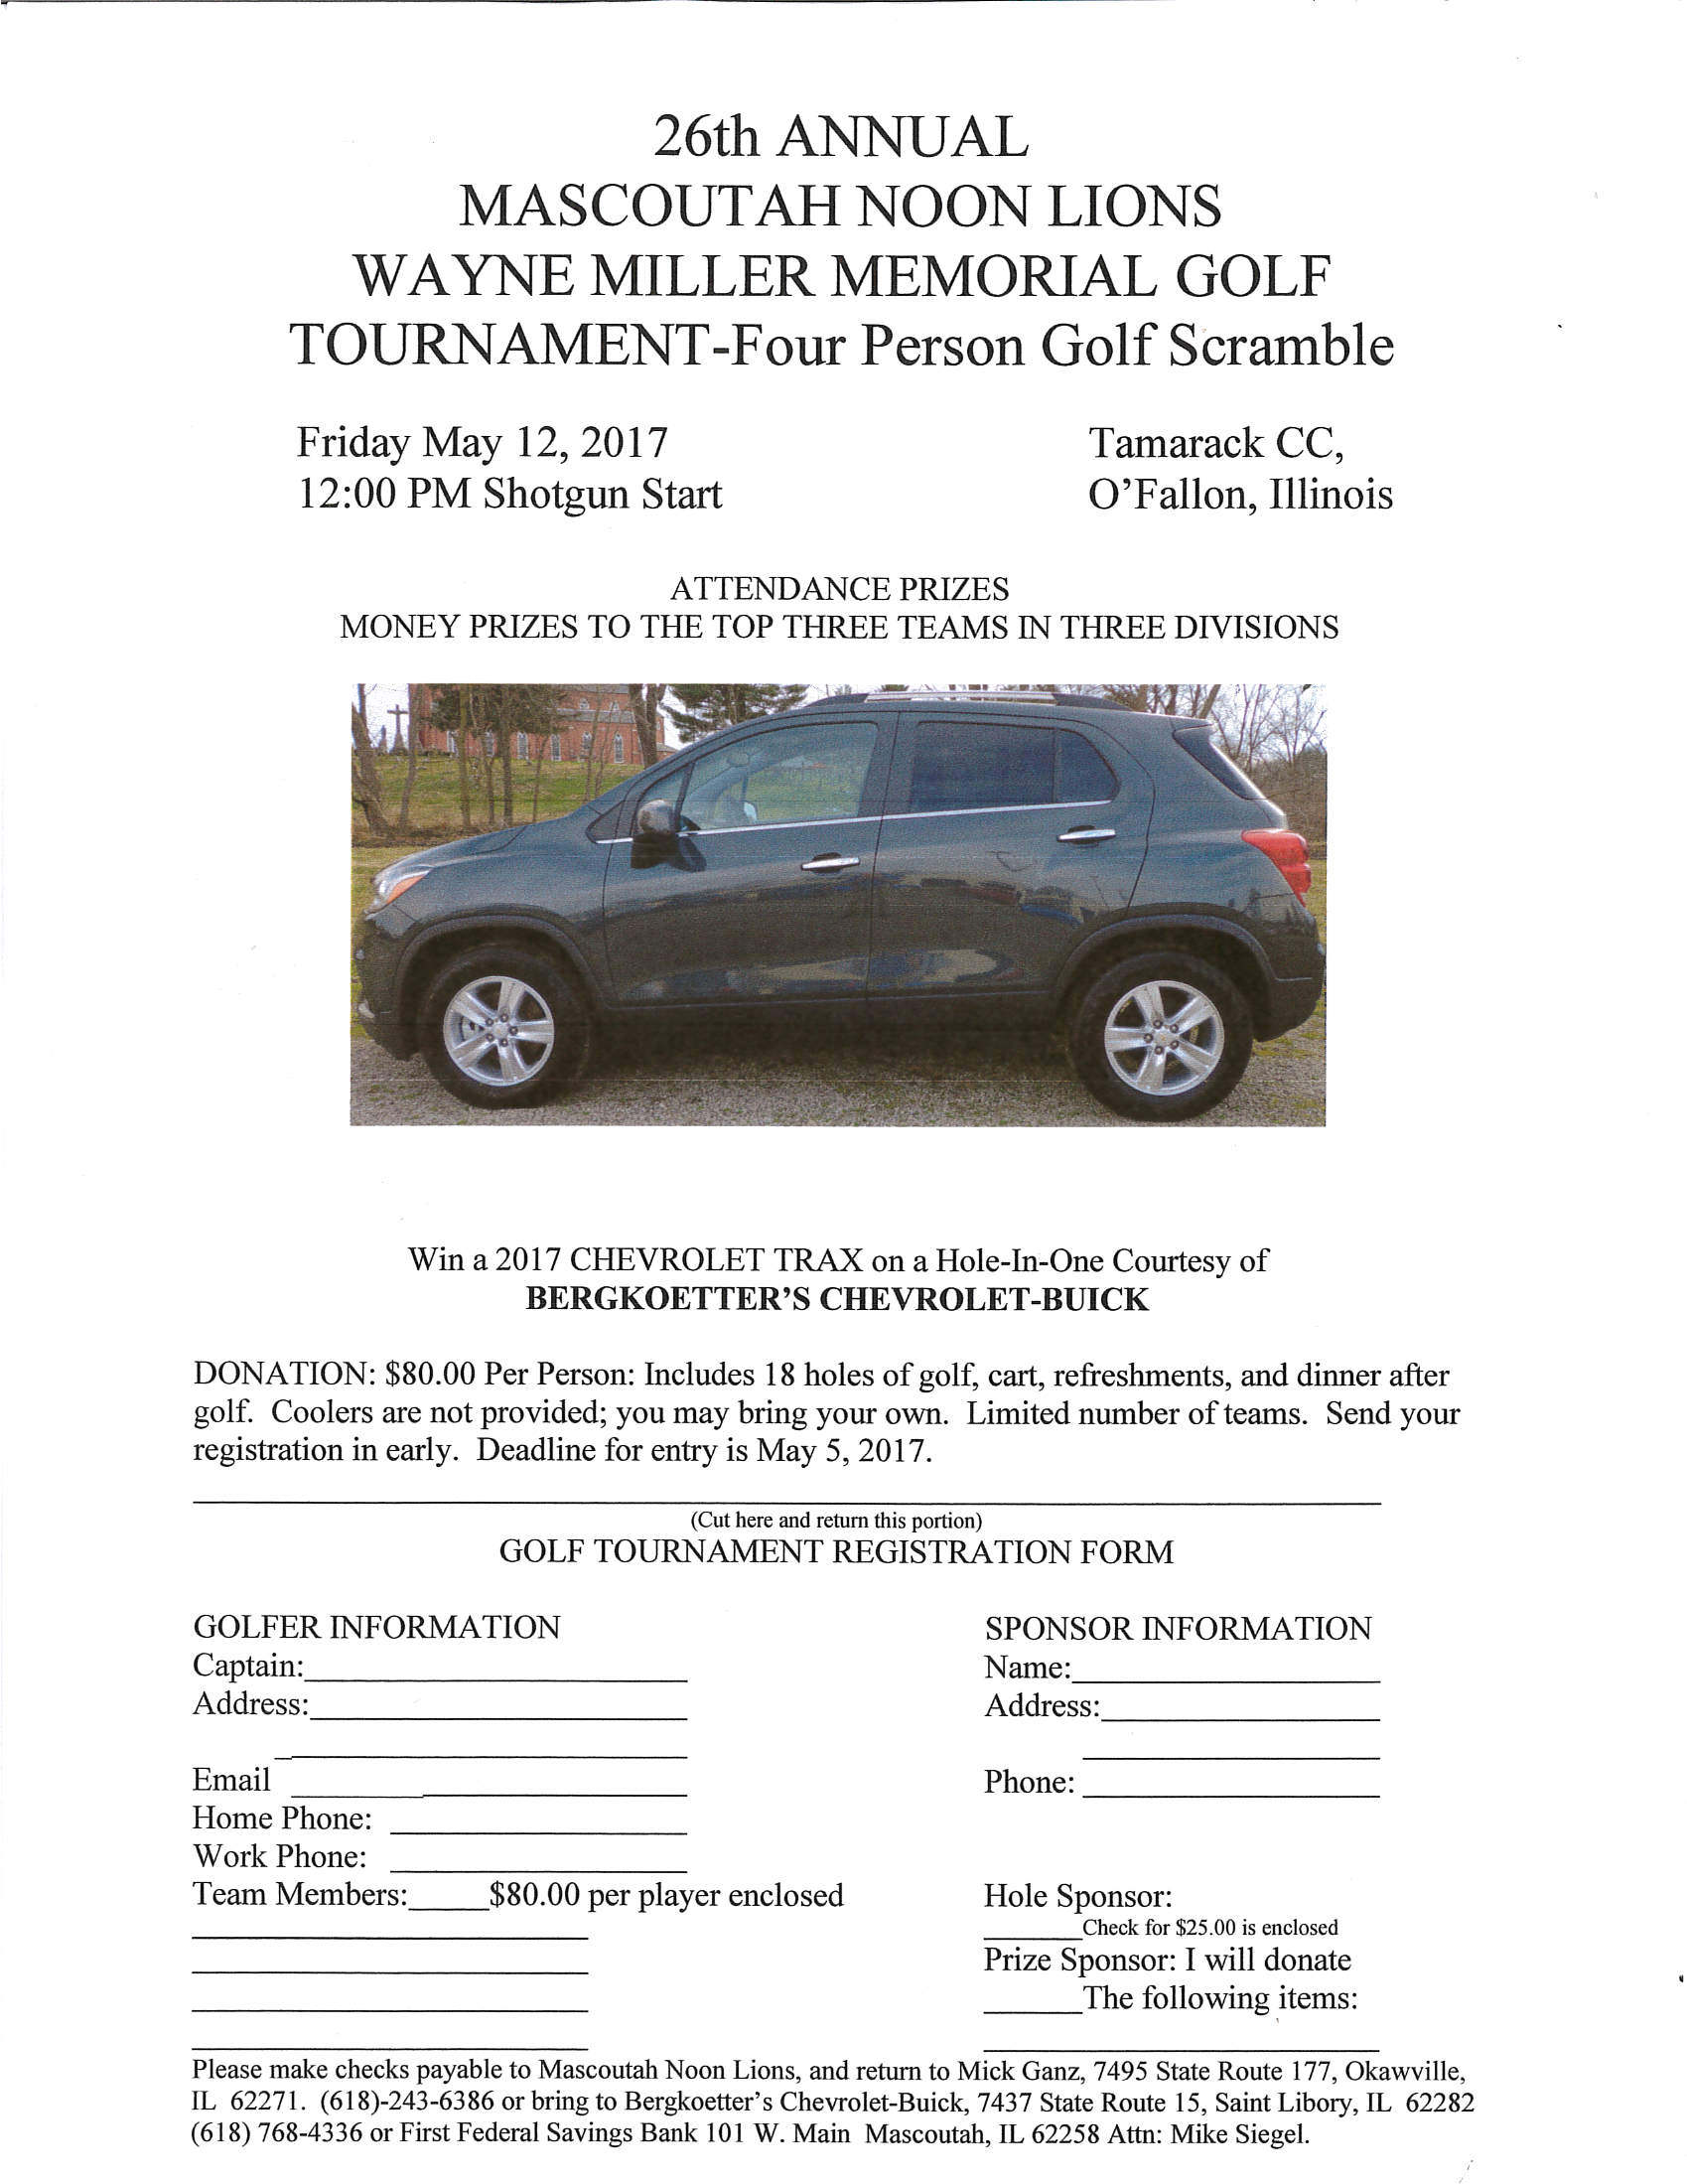 Wayne Miller Memorial Golf Tournament